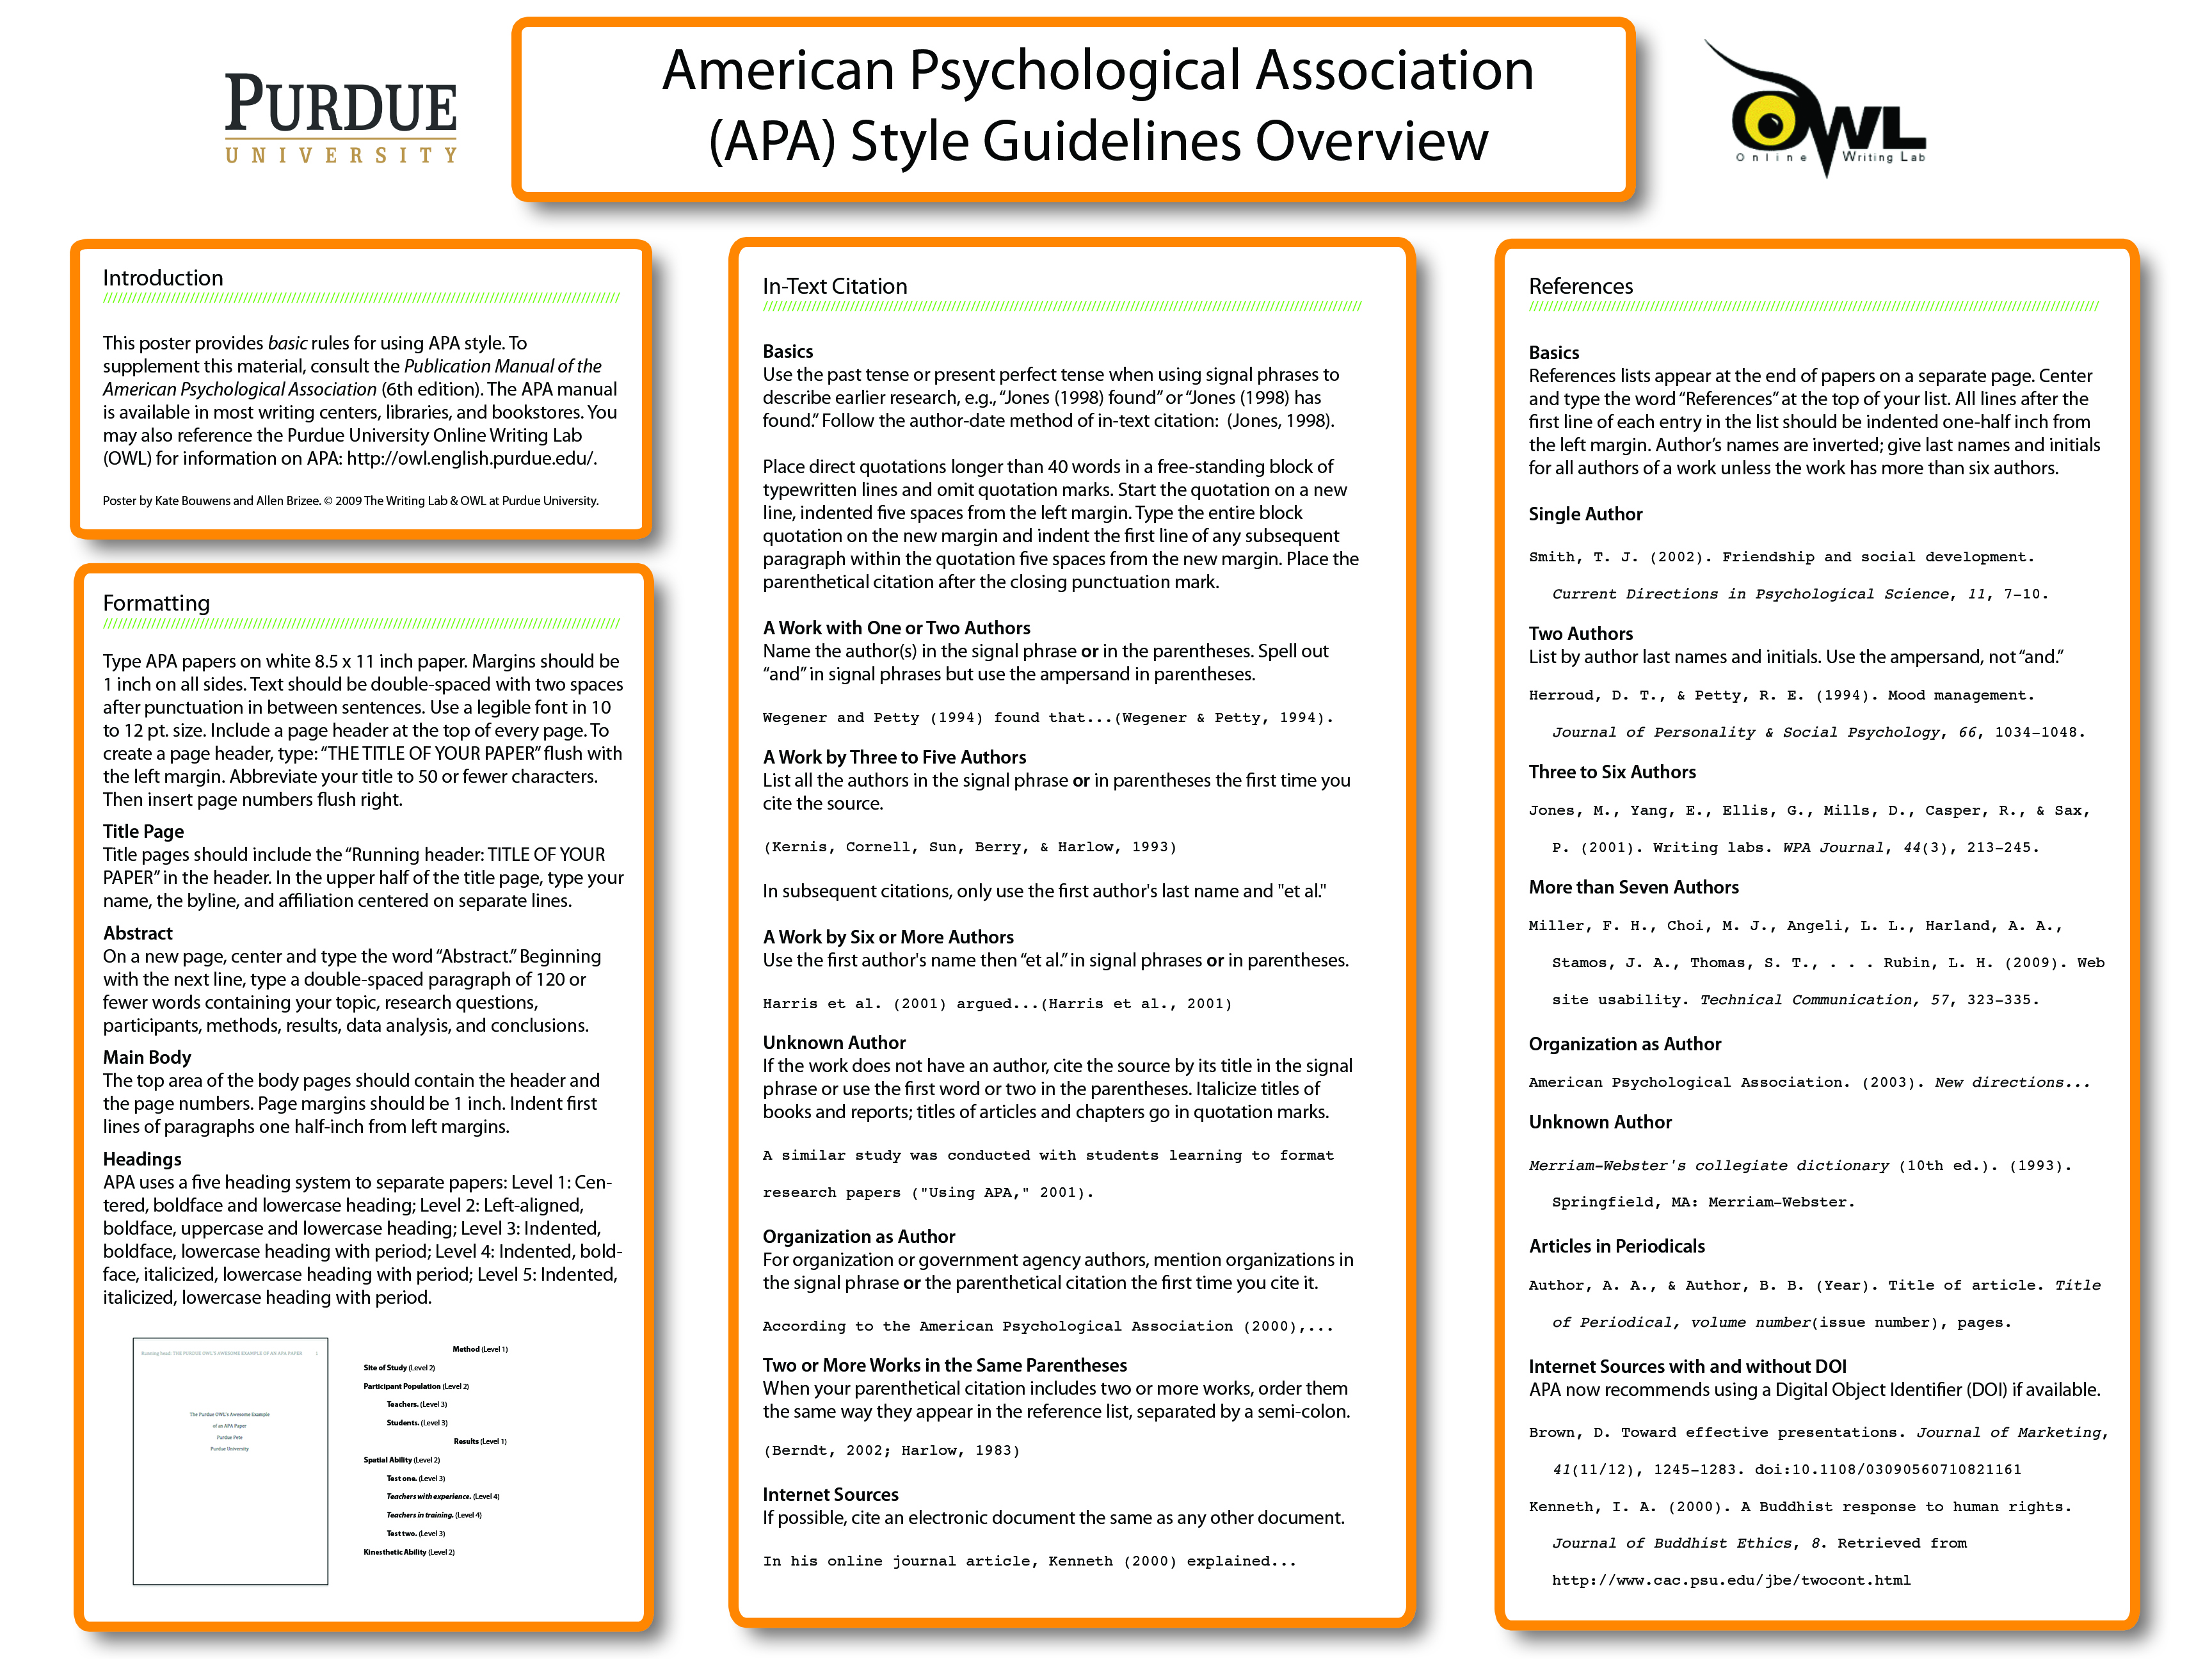 013 Apa Style Guide For Writing Research Papers Paper Best Full